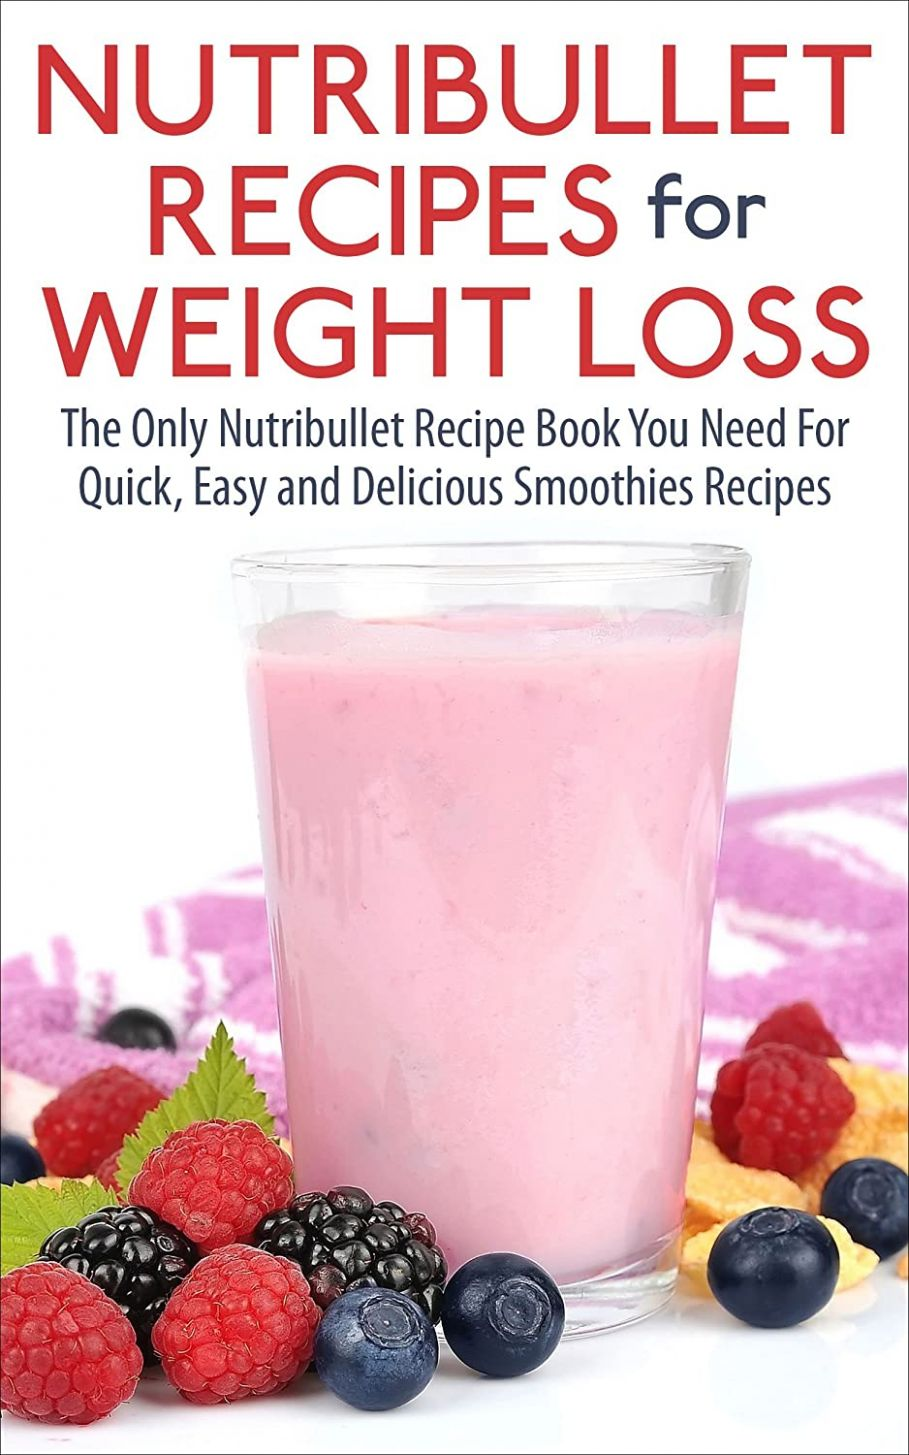 Nutribullet Recipes For Weight Loss: The Only Nutribullet Recipe ..